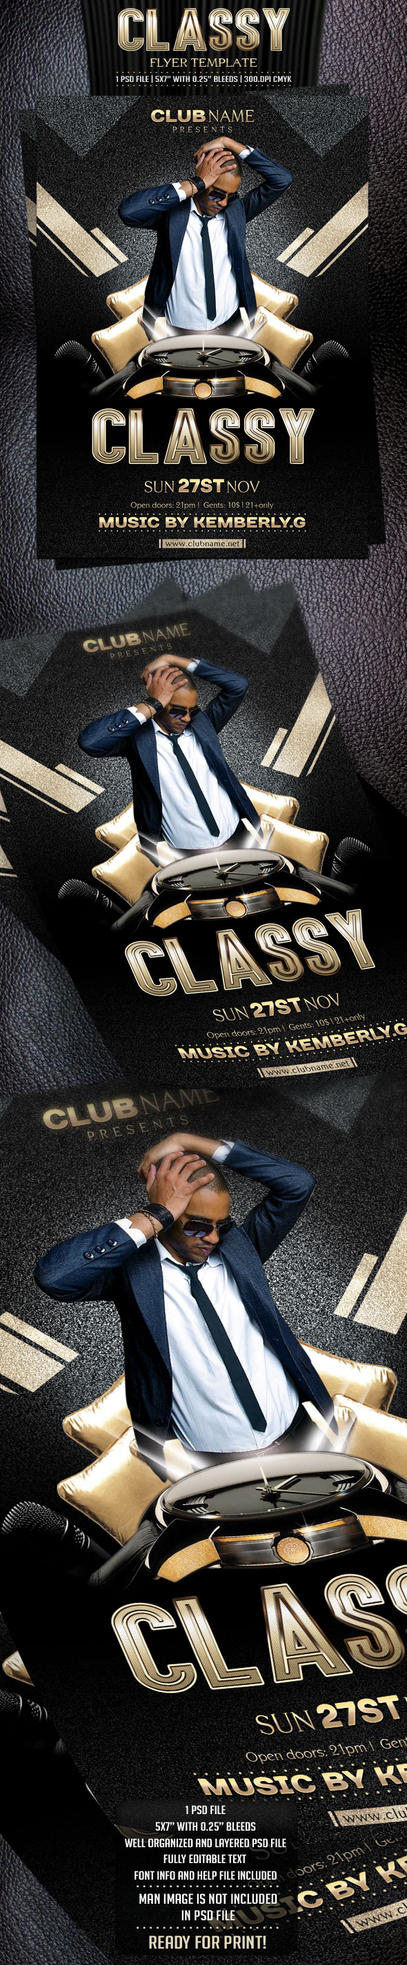 Classy Flyer Template by BriellDesign